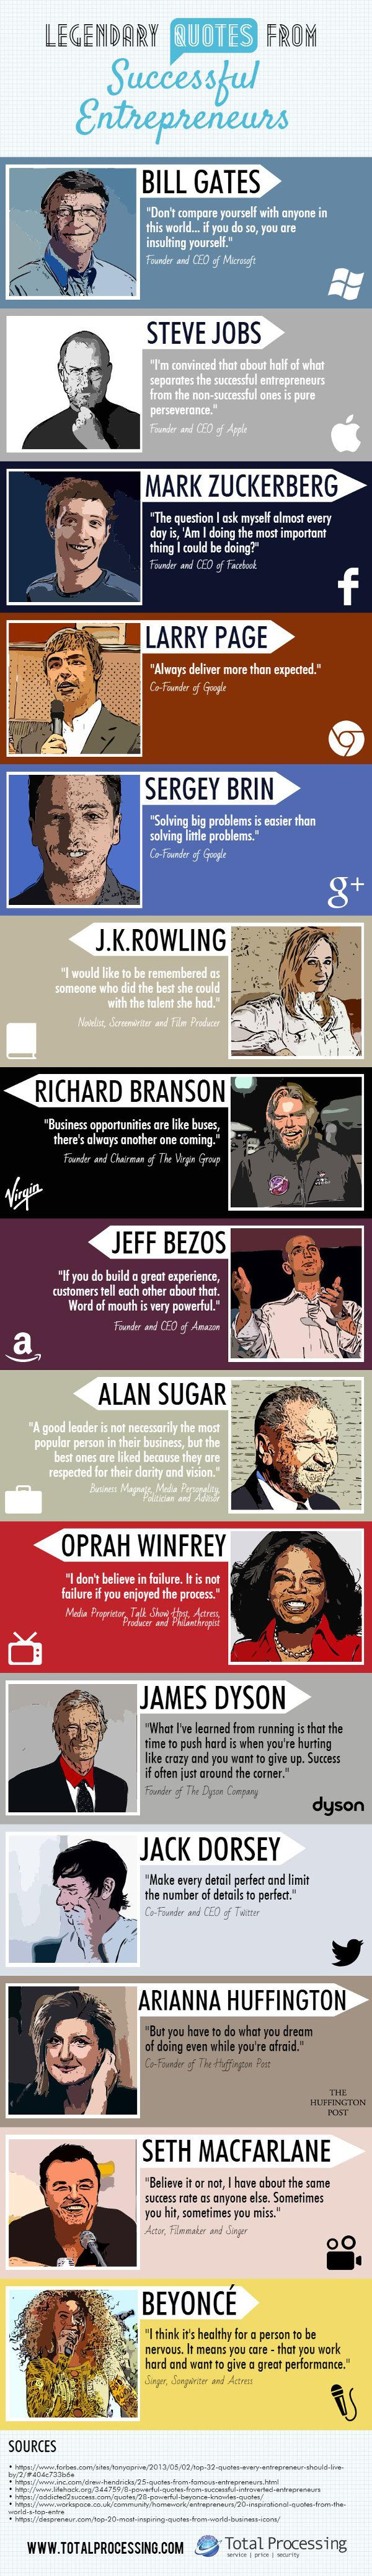 Monday Inspiration Legendary Quotes From Successful Entrepreneurs [Infographic] is part of Job quotes - These inspirational quotes will get you motivated  See what successful entrepreneurs  from Bill Gates to Steve Jobs to Beyonce  say about overcoming challenges and performing at their best